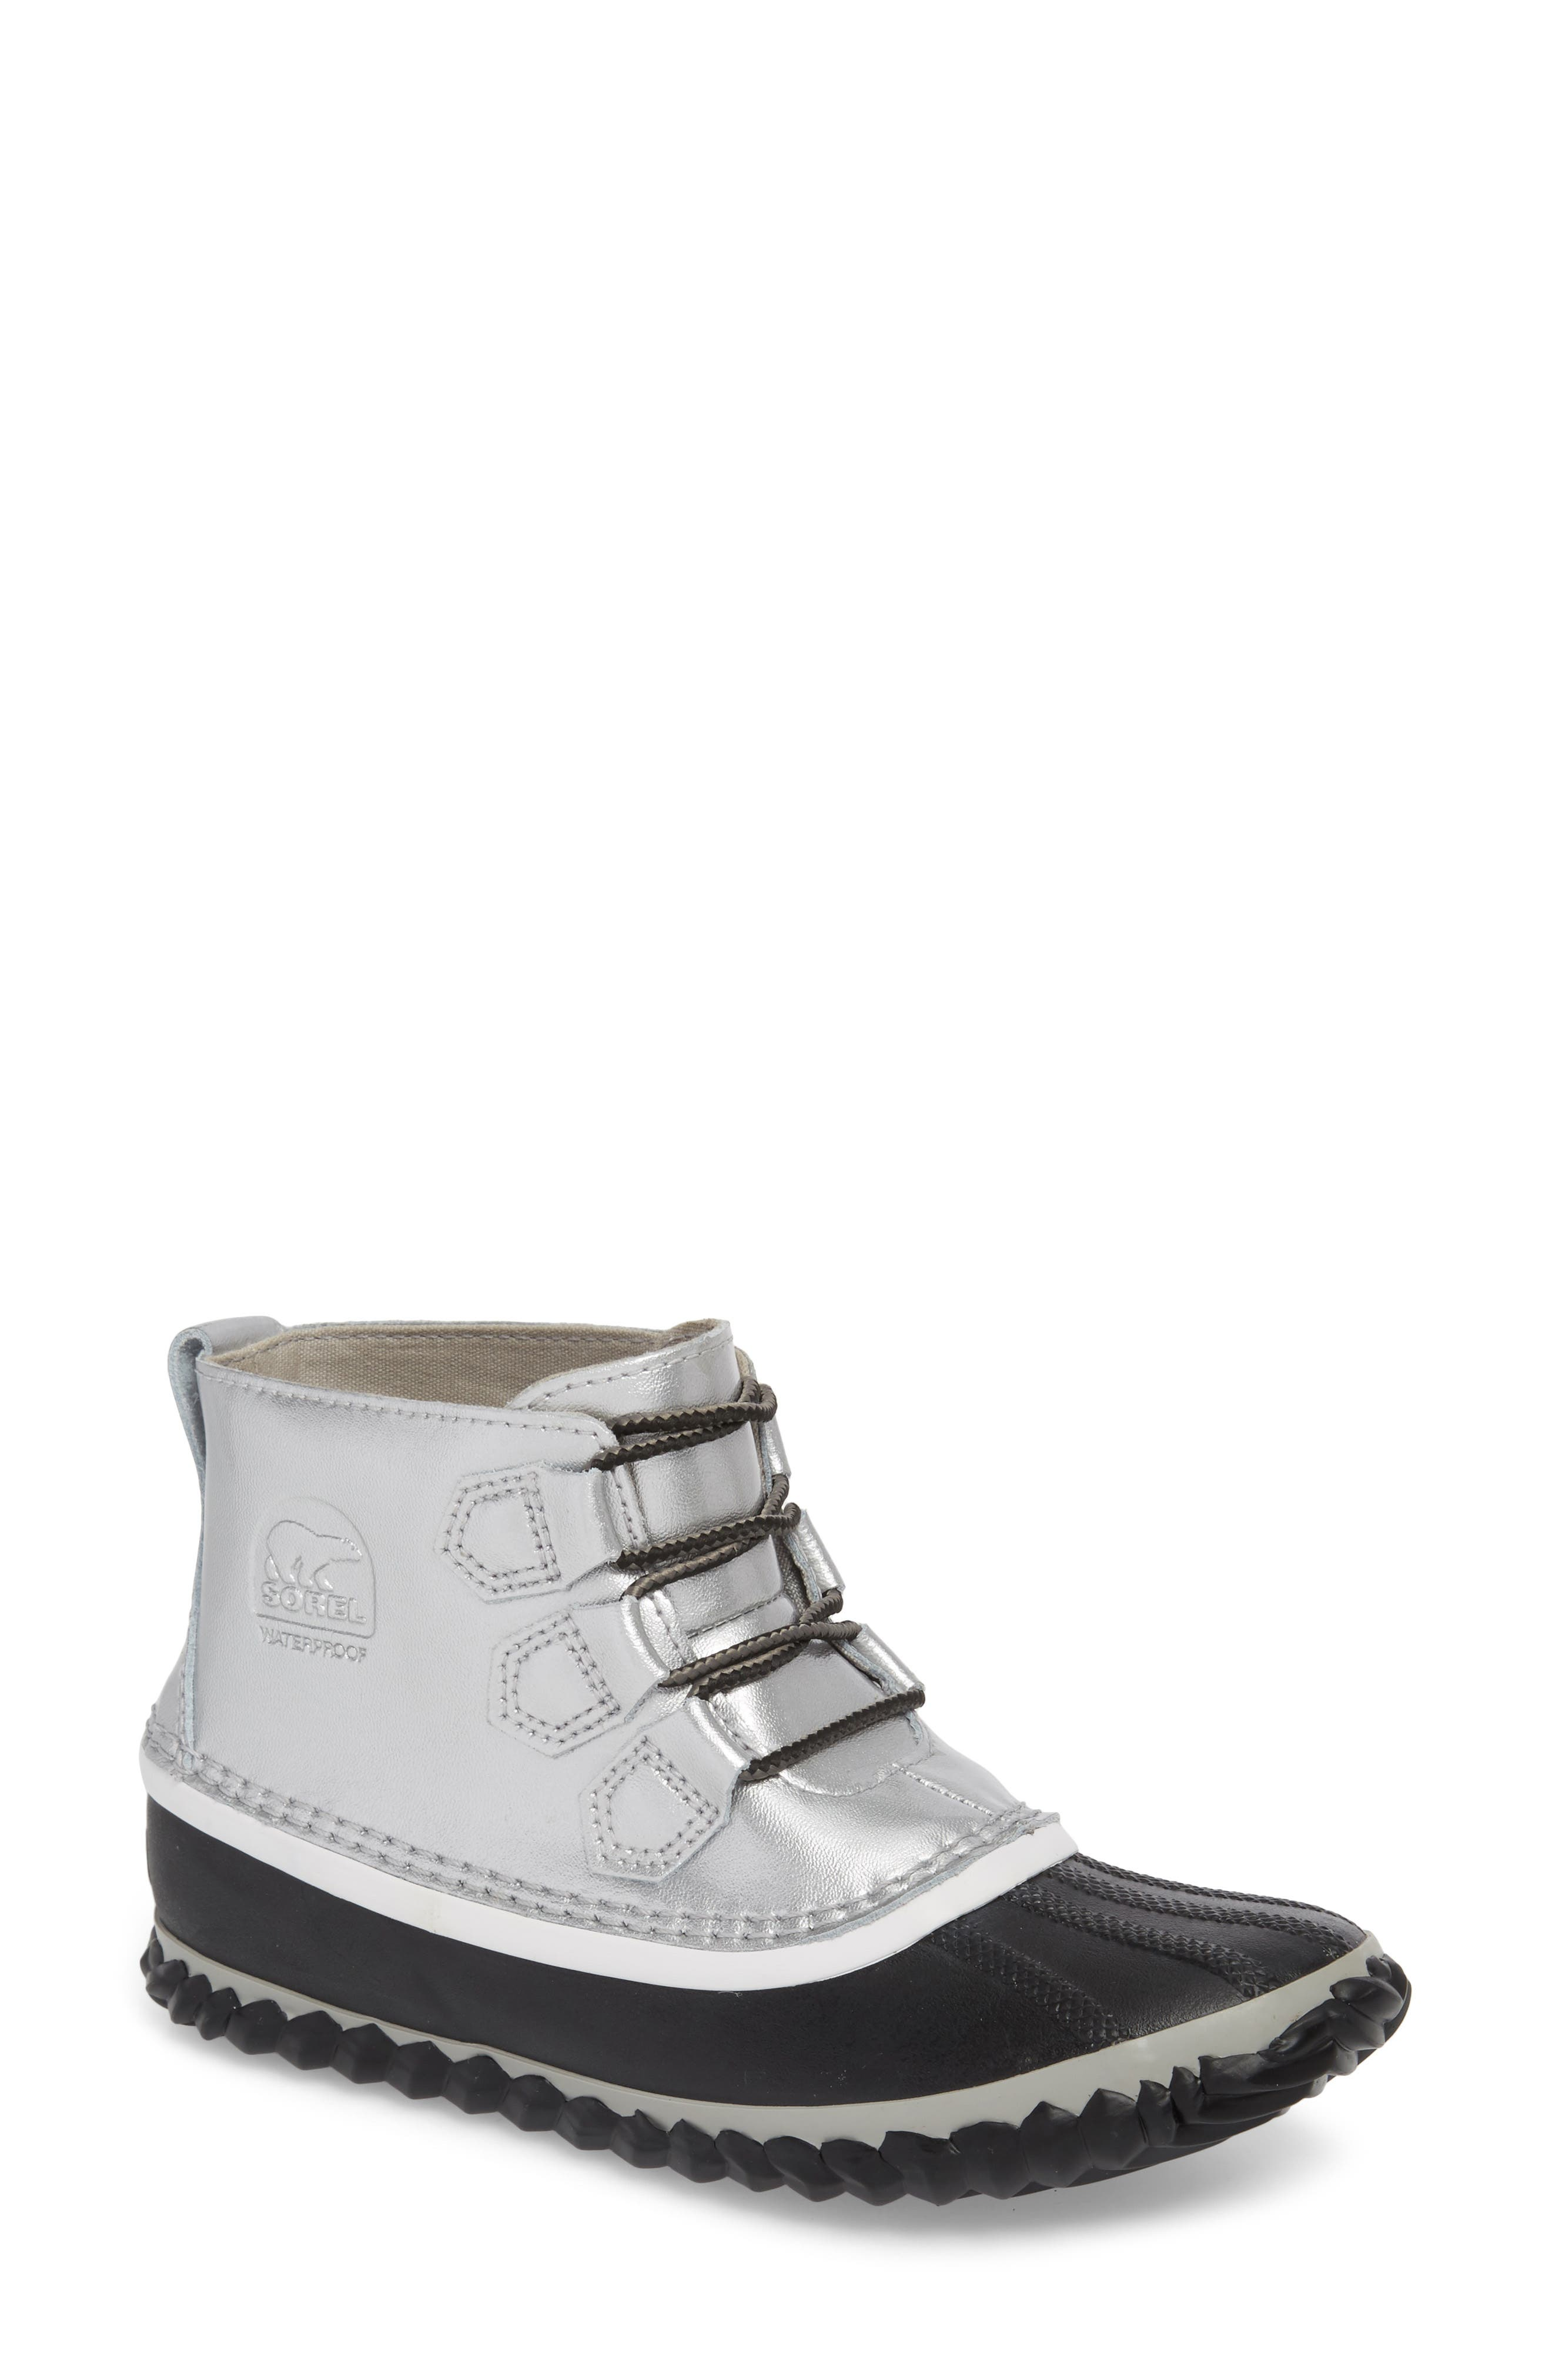 'Out N About' Leather Boot,                             Main thumbnail 1, color,                             Lux Black